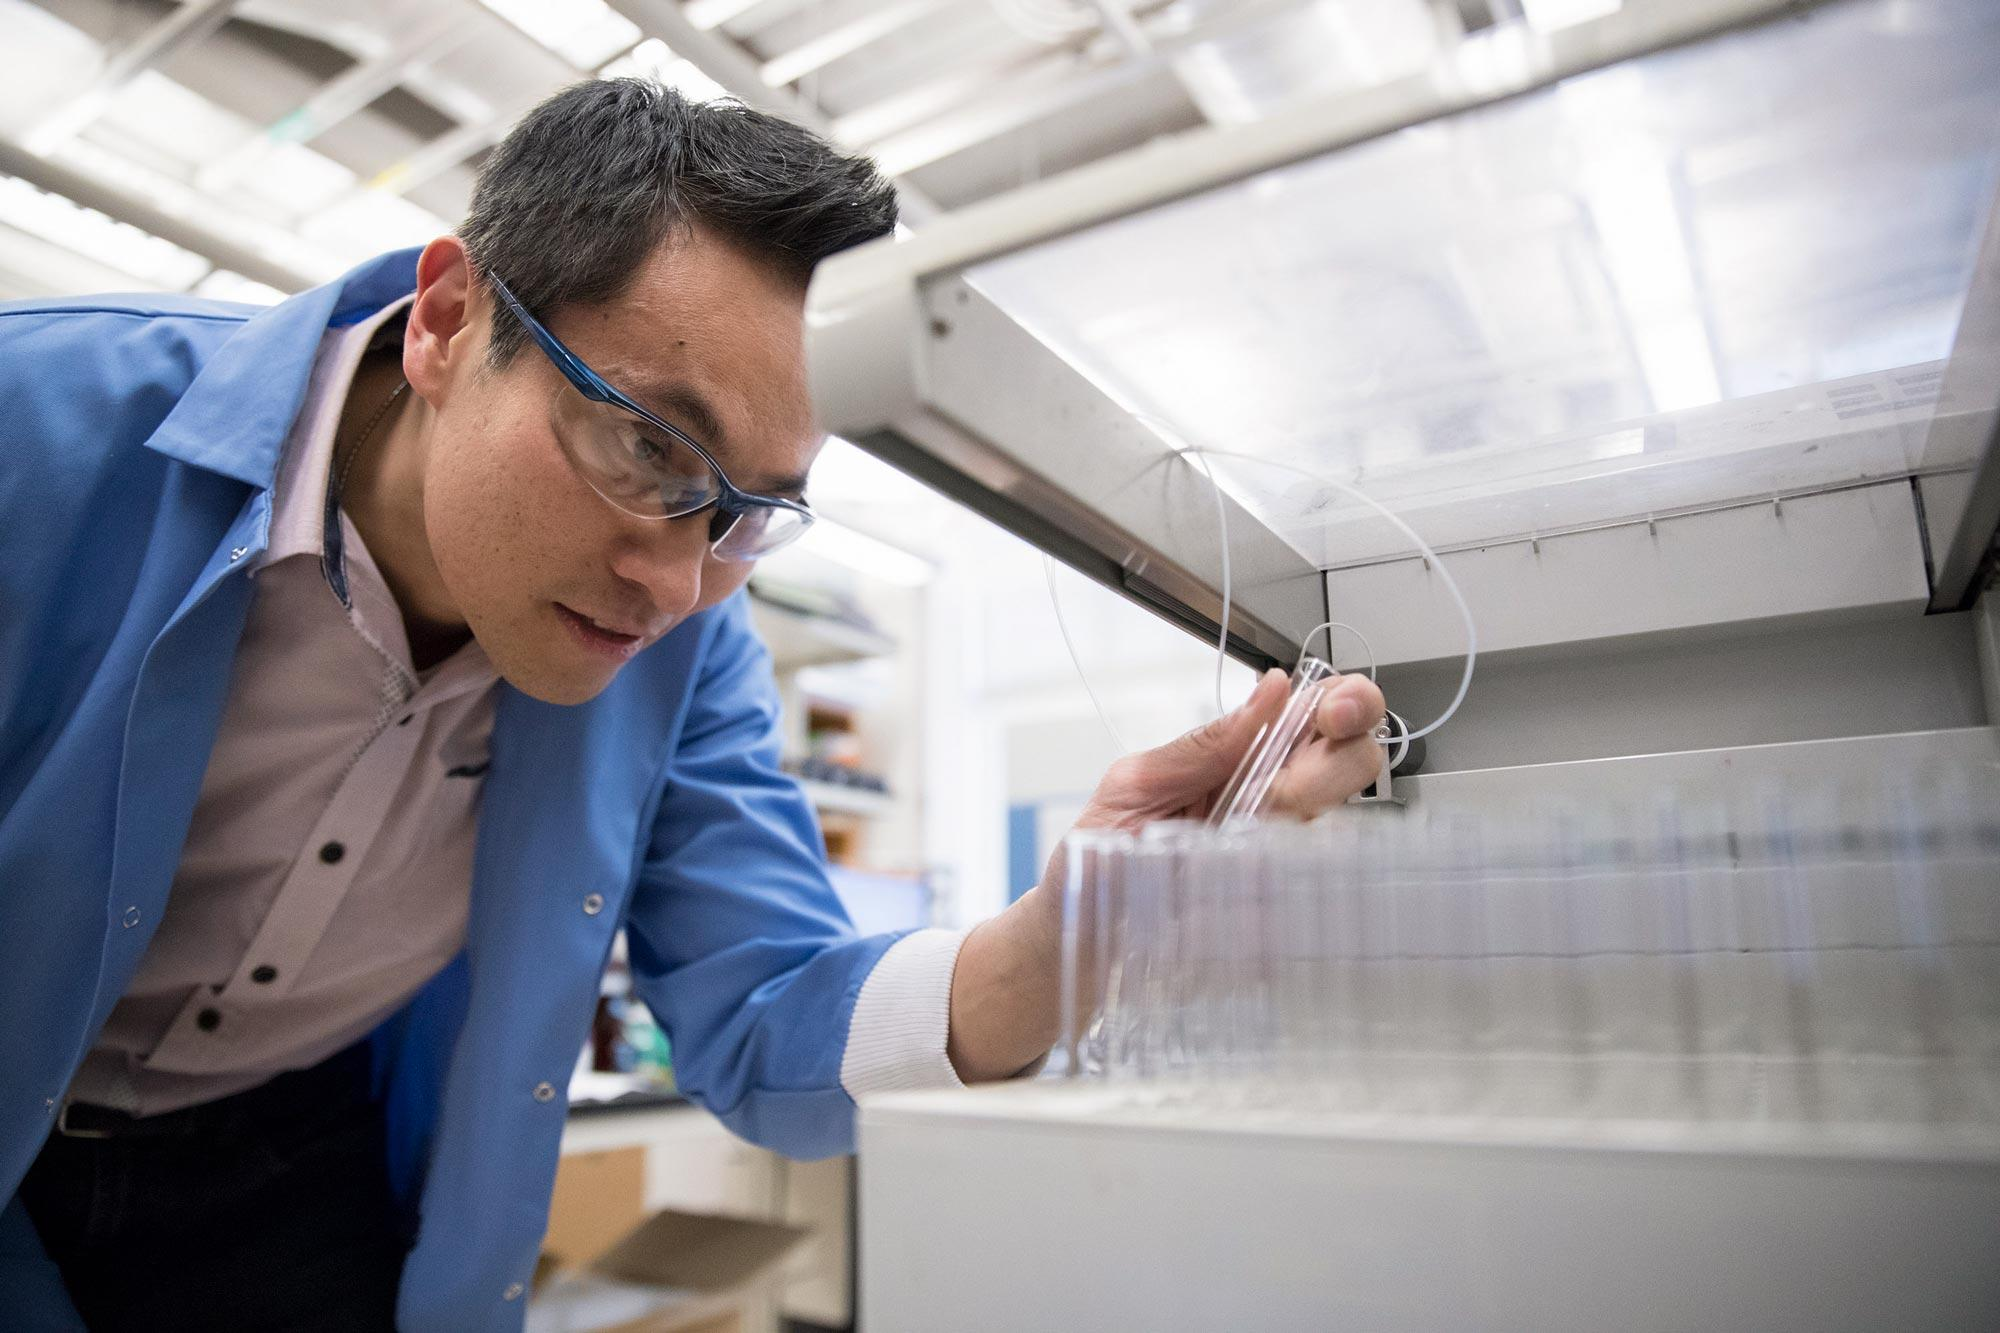 Ken Hsu is working to understand and control the body's inflammation response, with a focus on modifying immune cells to recognize and kill cancer.